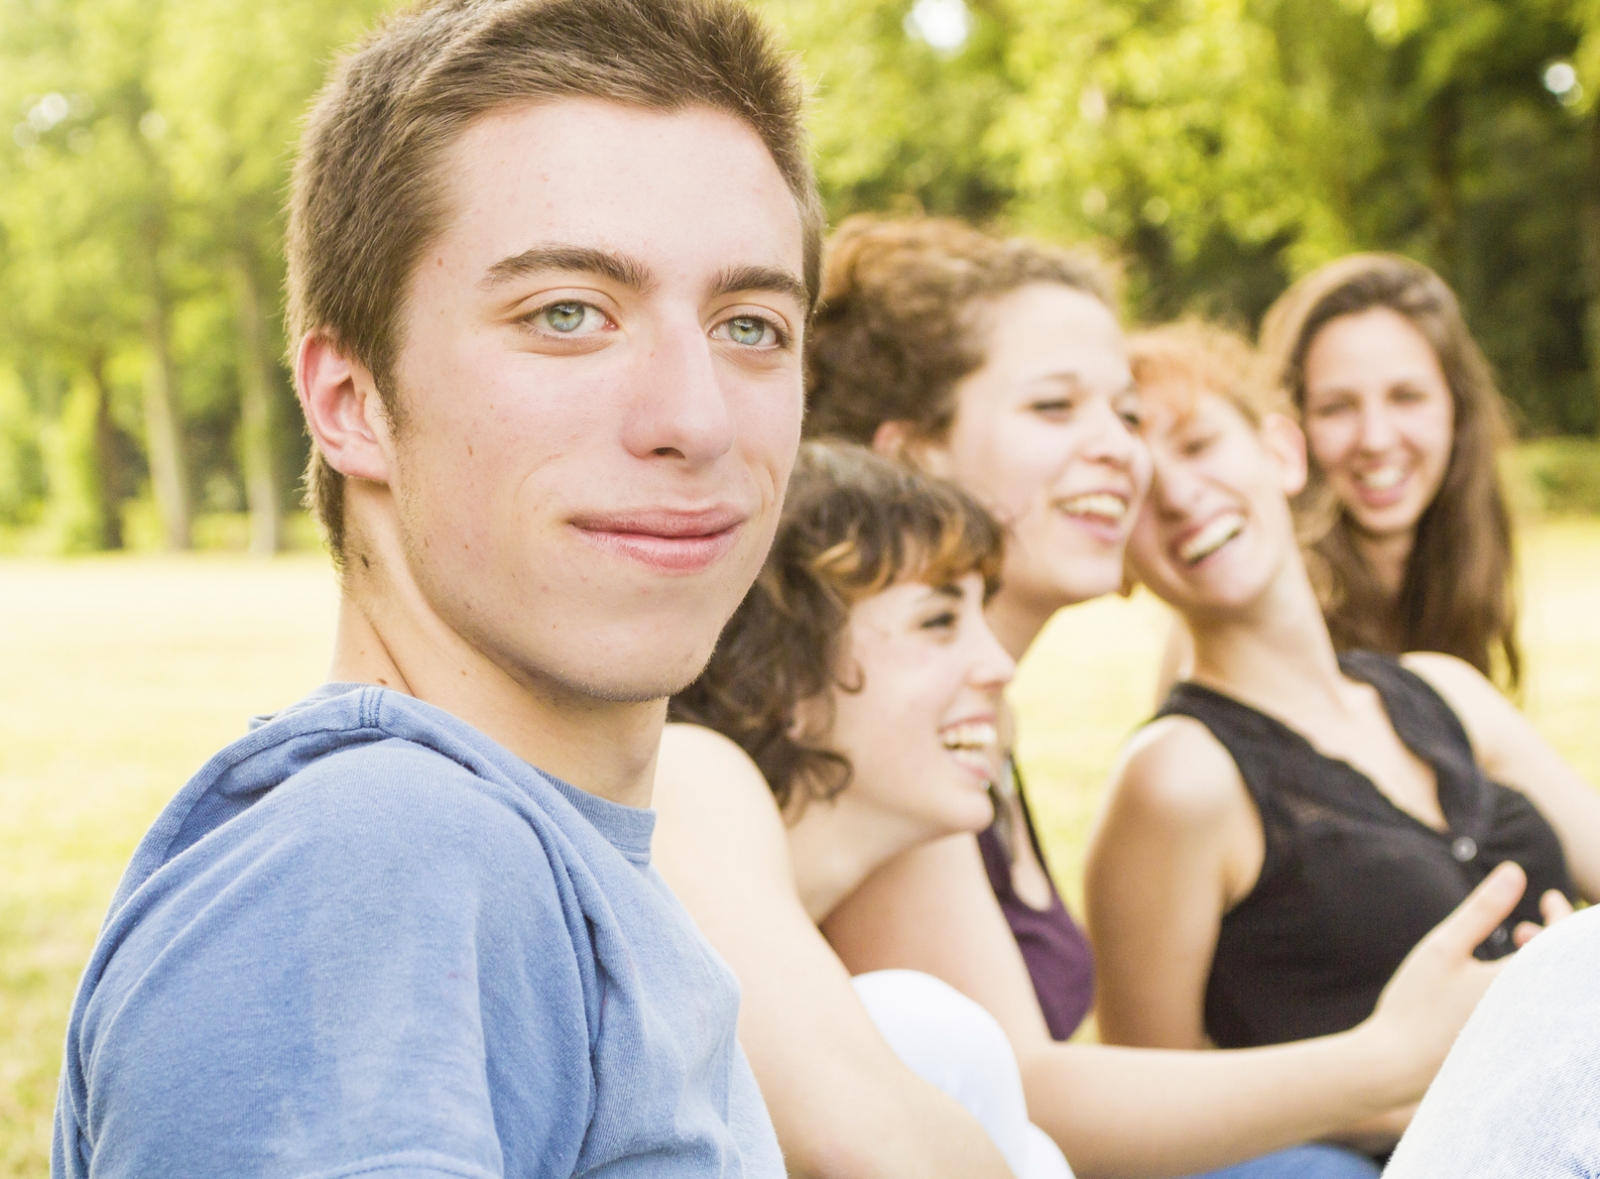 Adolescence is now the ages of 10 to 24, say experts